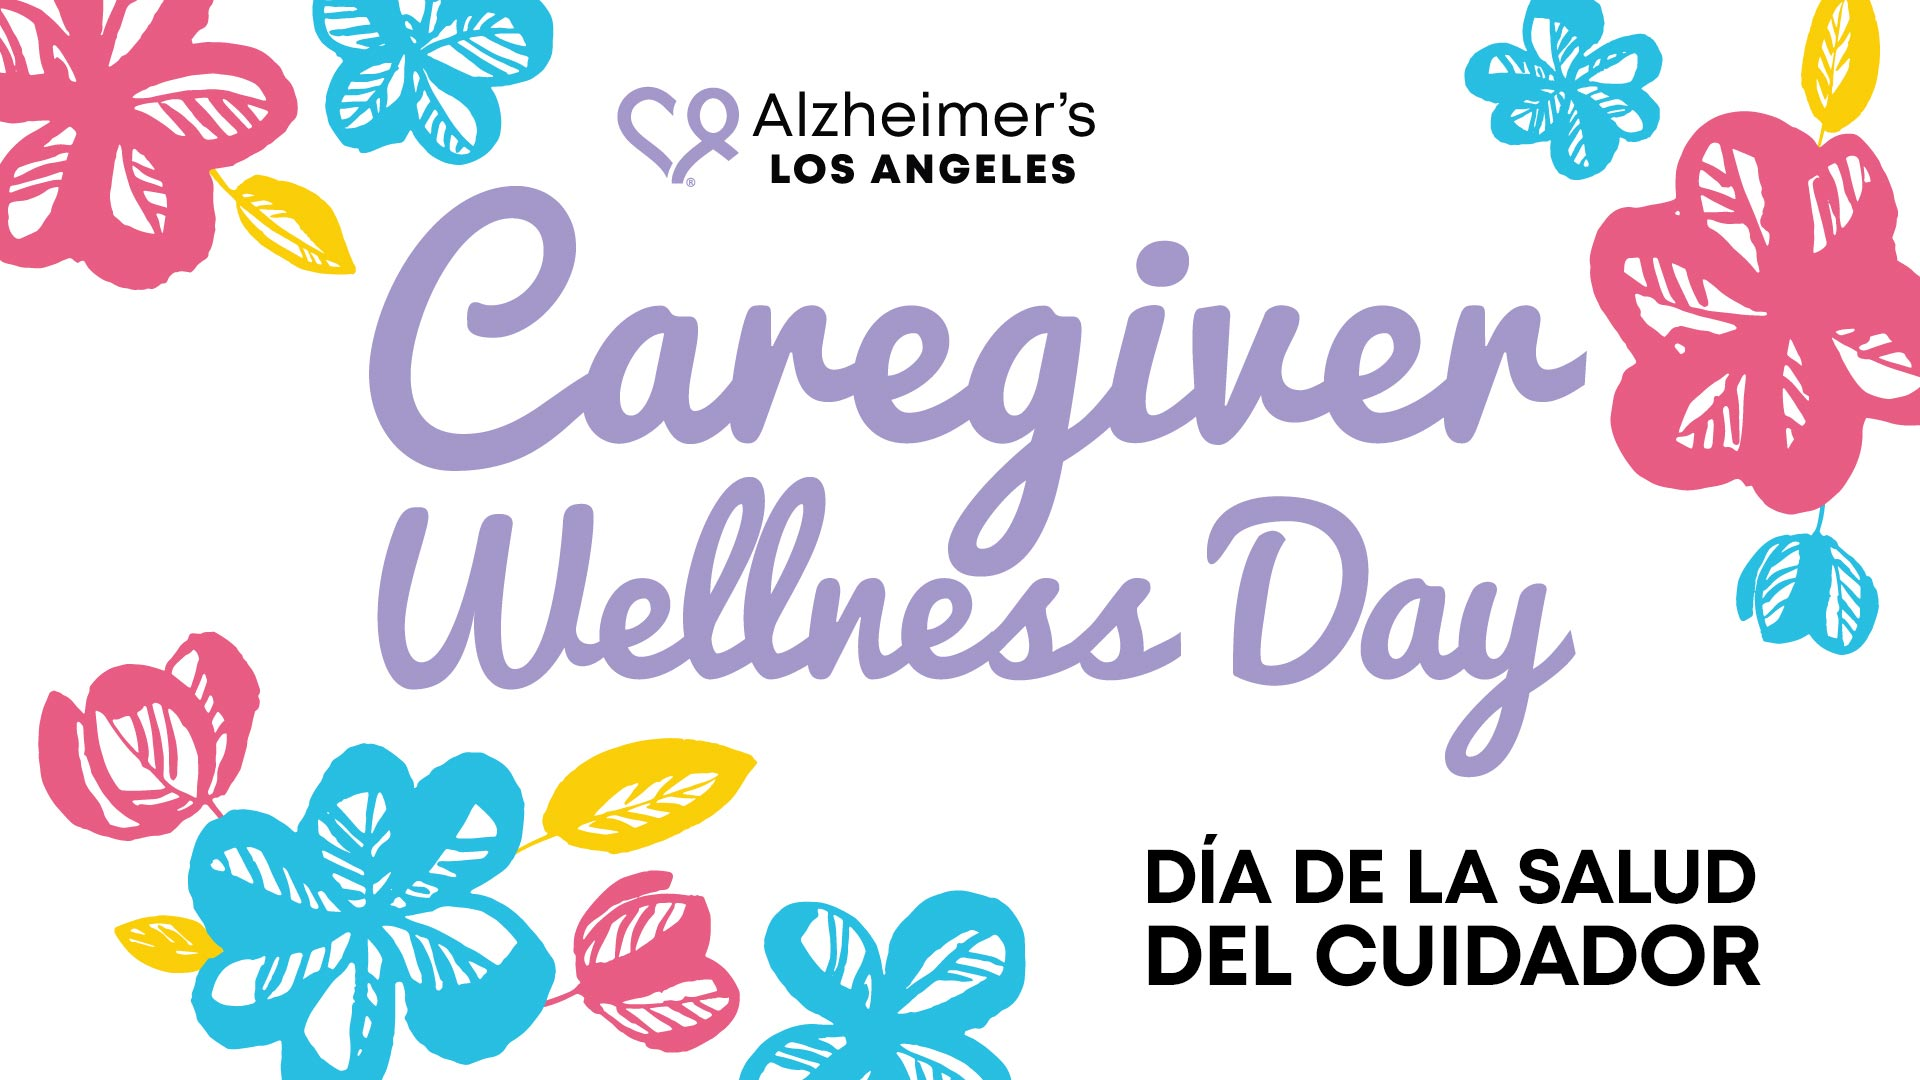 Caregiver Wellness Day